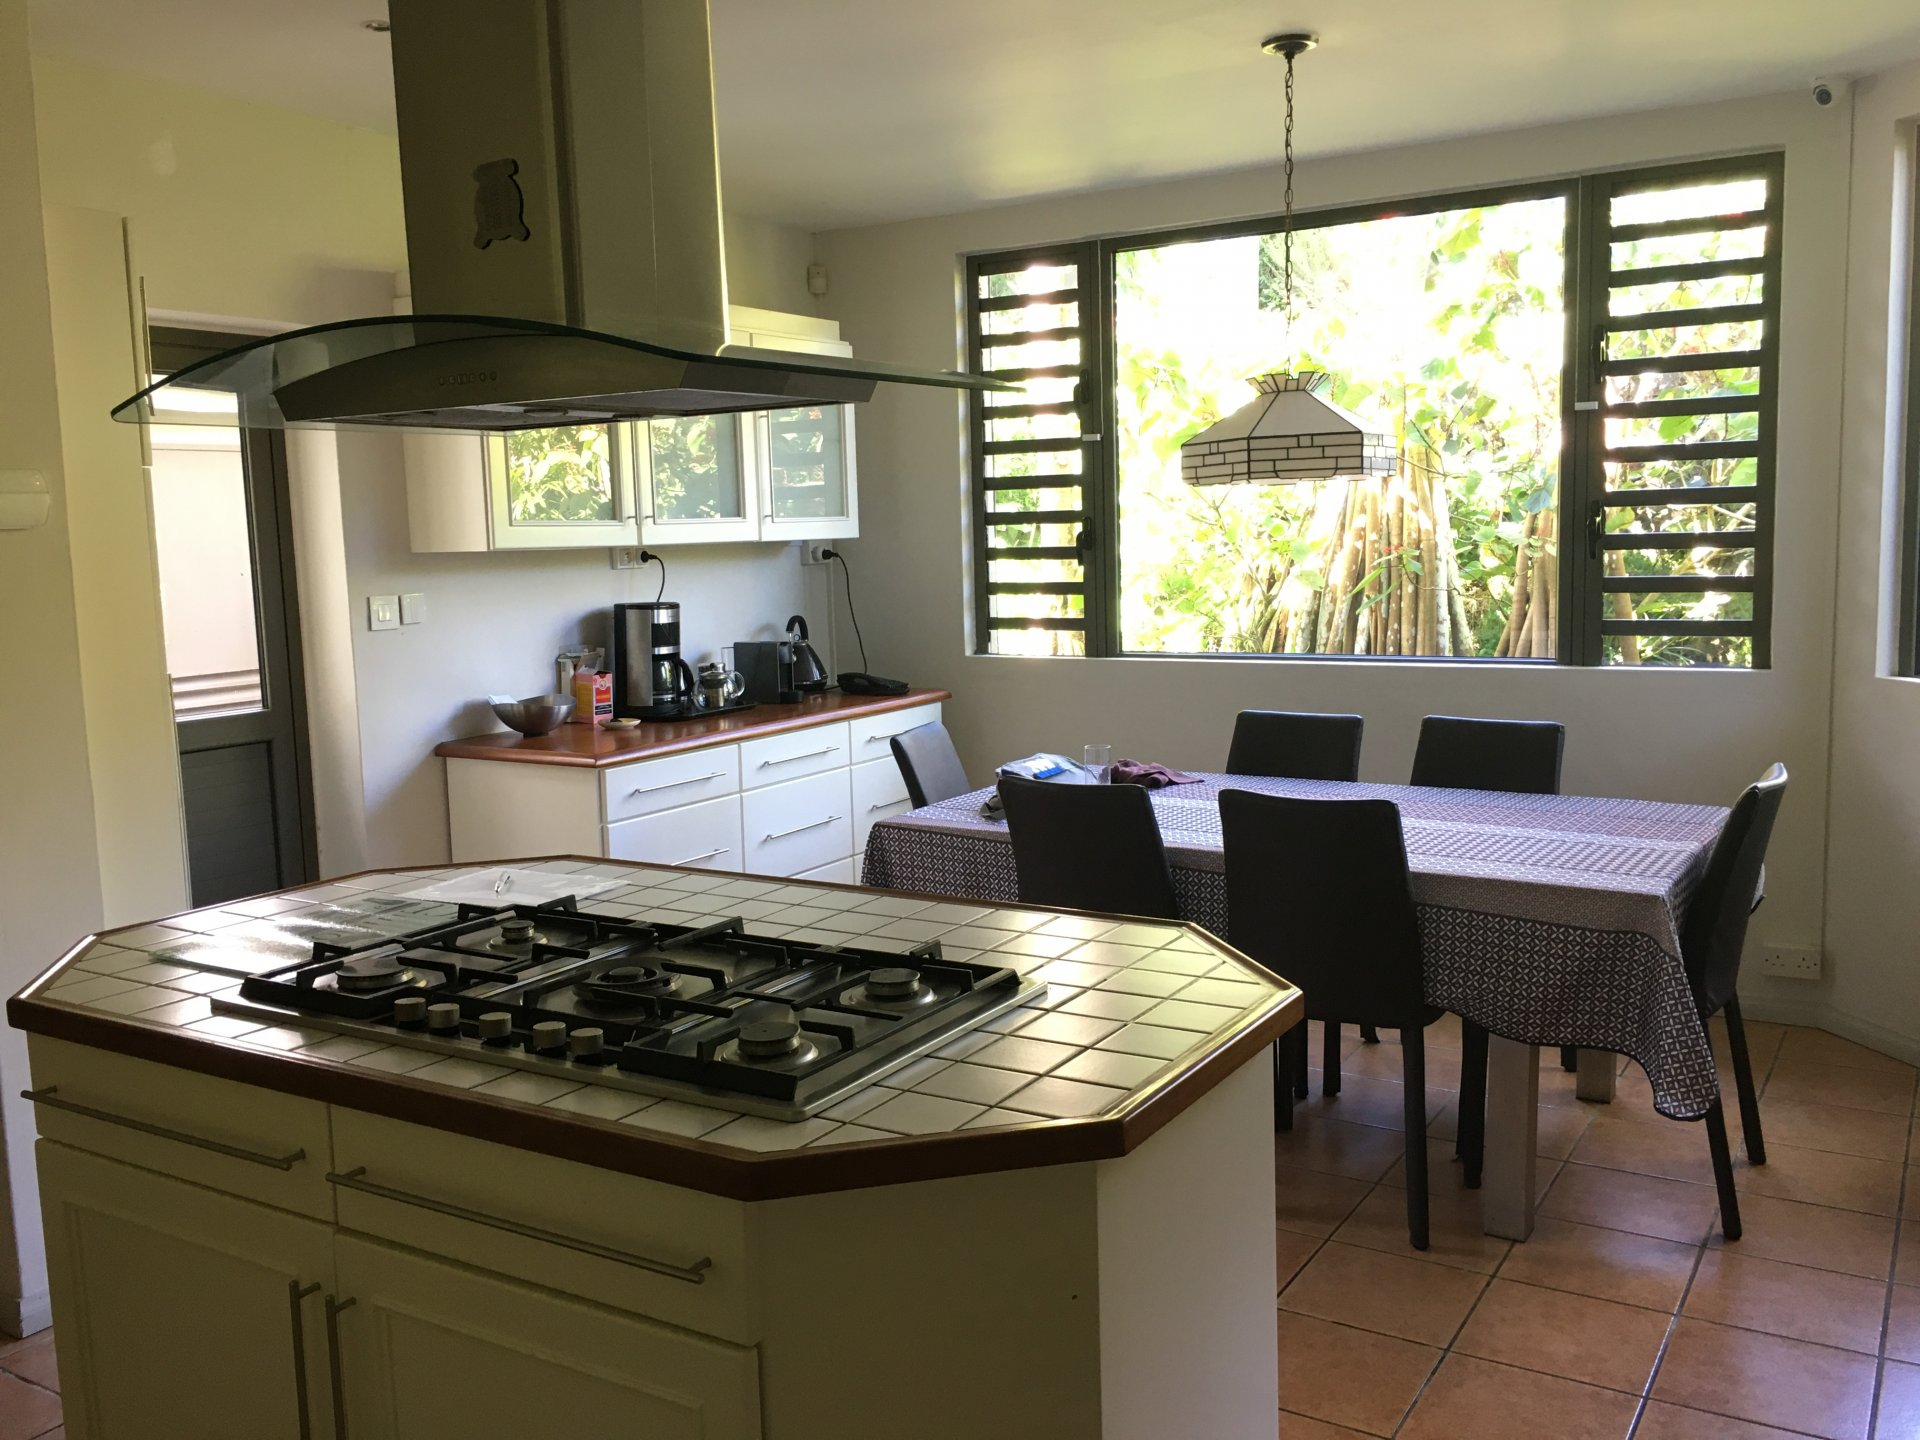 4bedroom family house for sale in Floreal